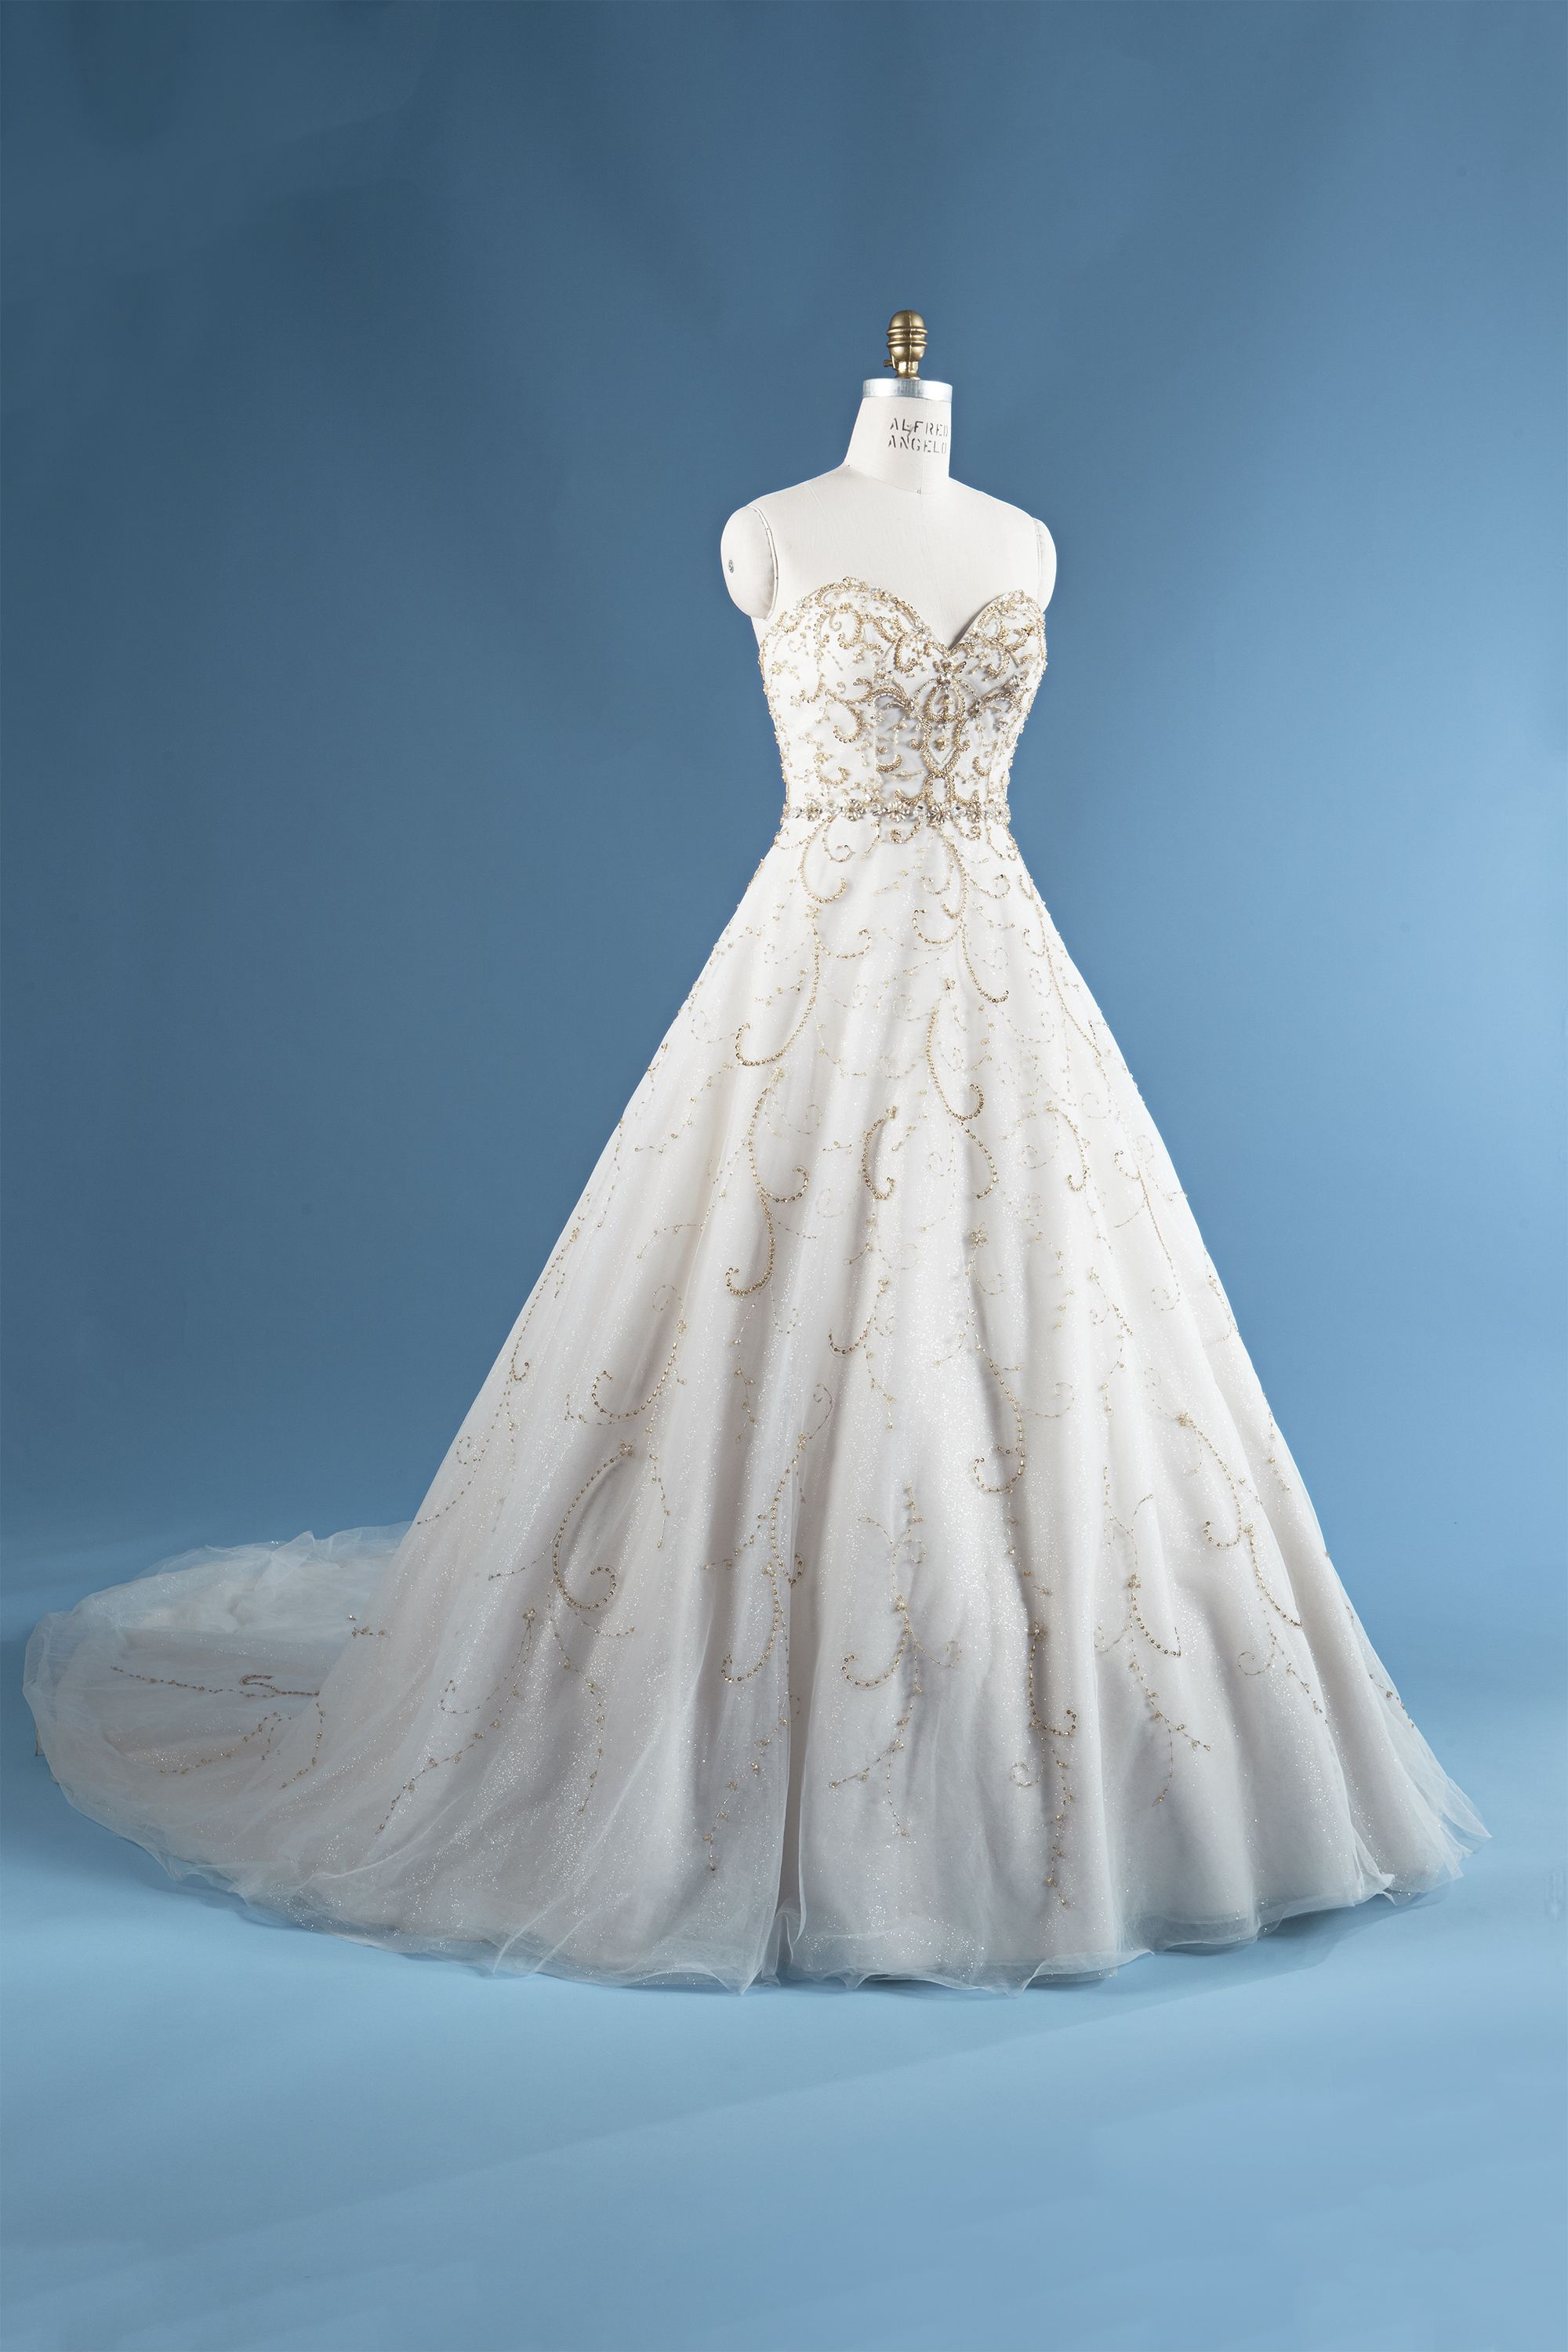 Cinderella wedding dress alfred angelo  Spend your special day dressed like the iconic Cinderella with a